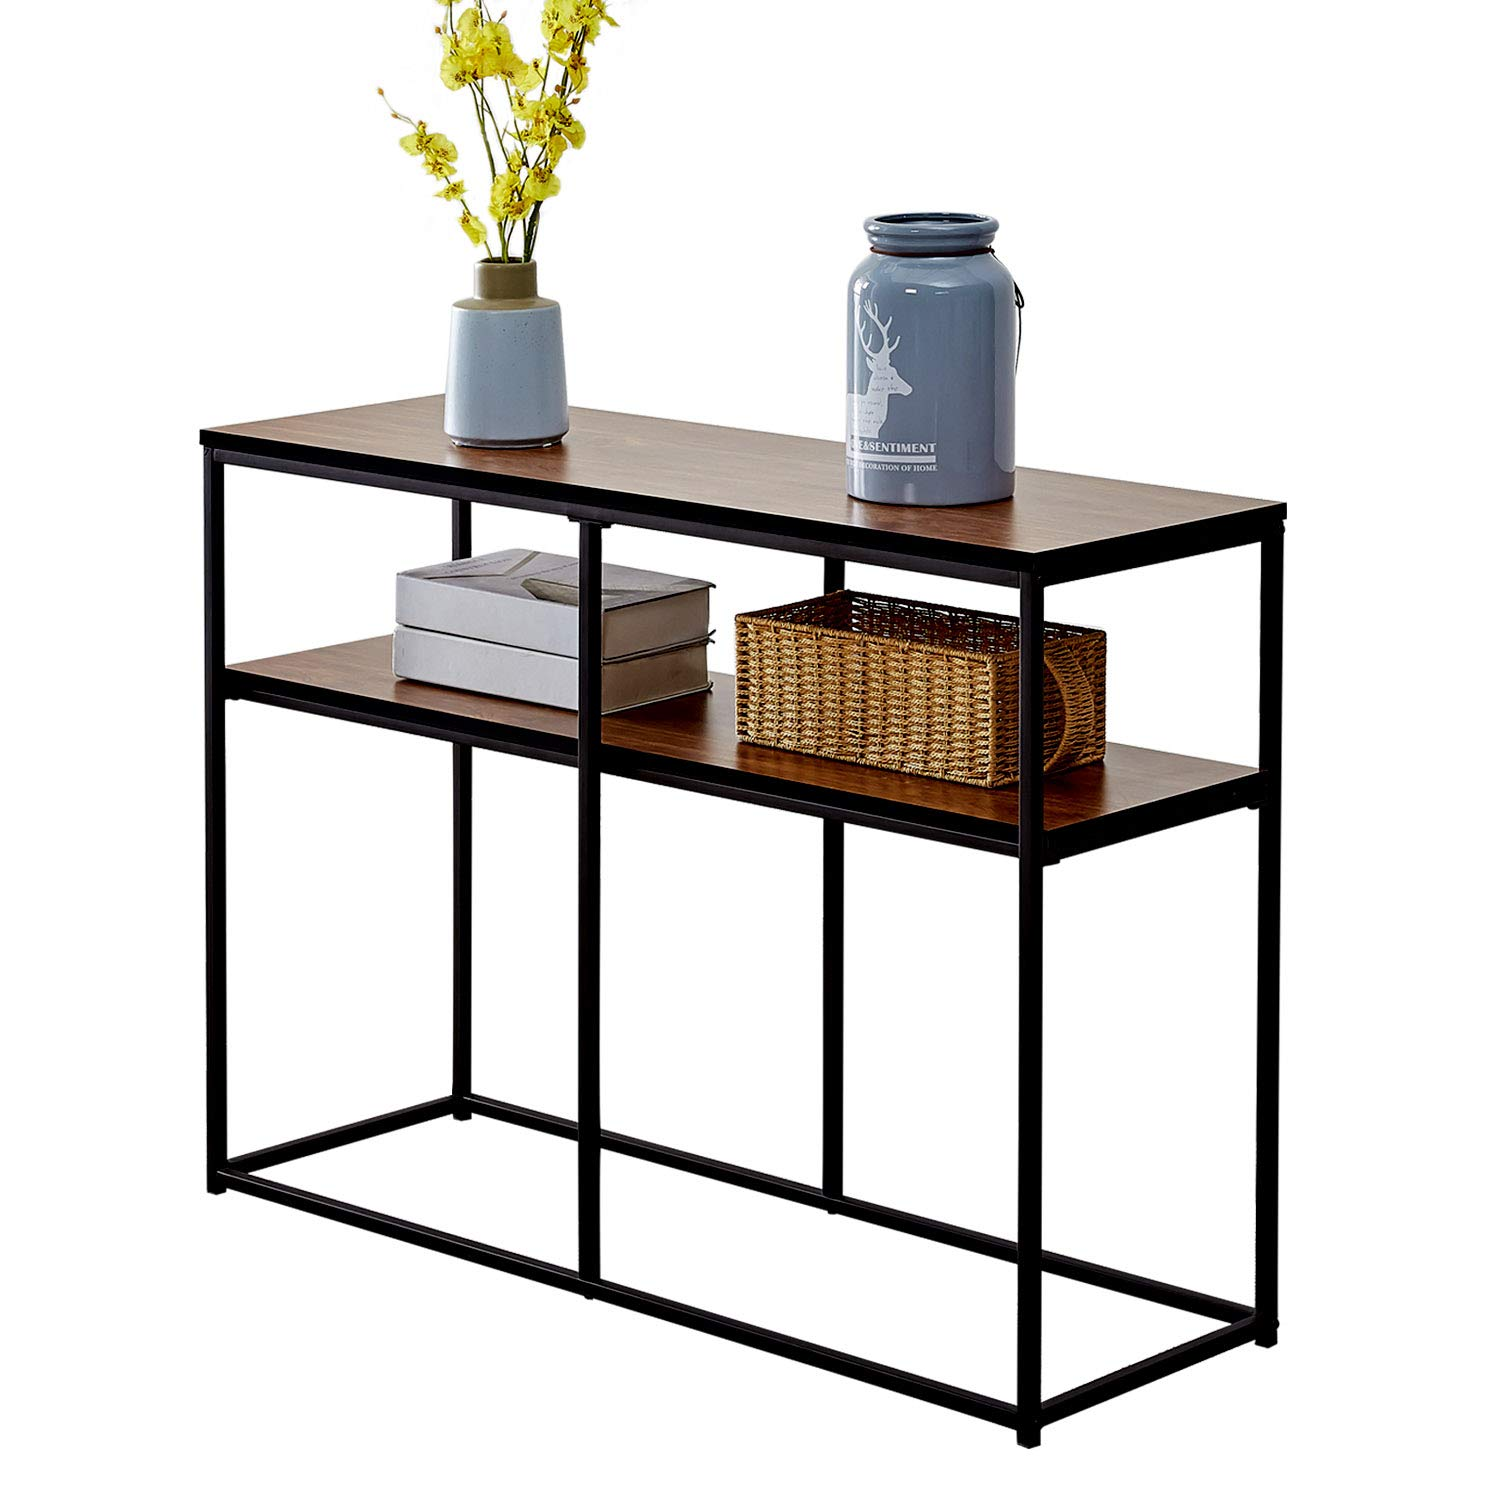 VECELO 2 Tier Console Multipurpose Sofa Side Bookshelf Rectangular Entryway/Living Room Tables with Storage Shelf, Brown by VECELO